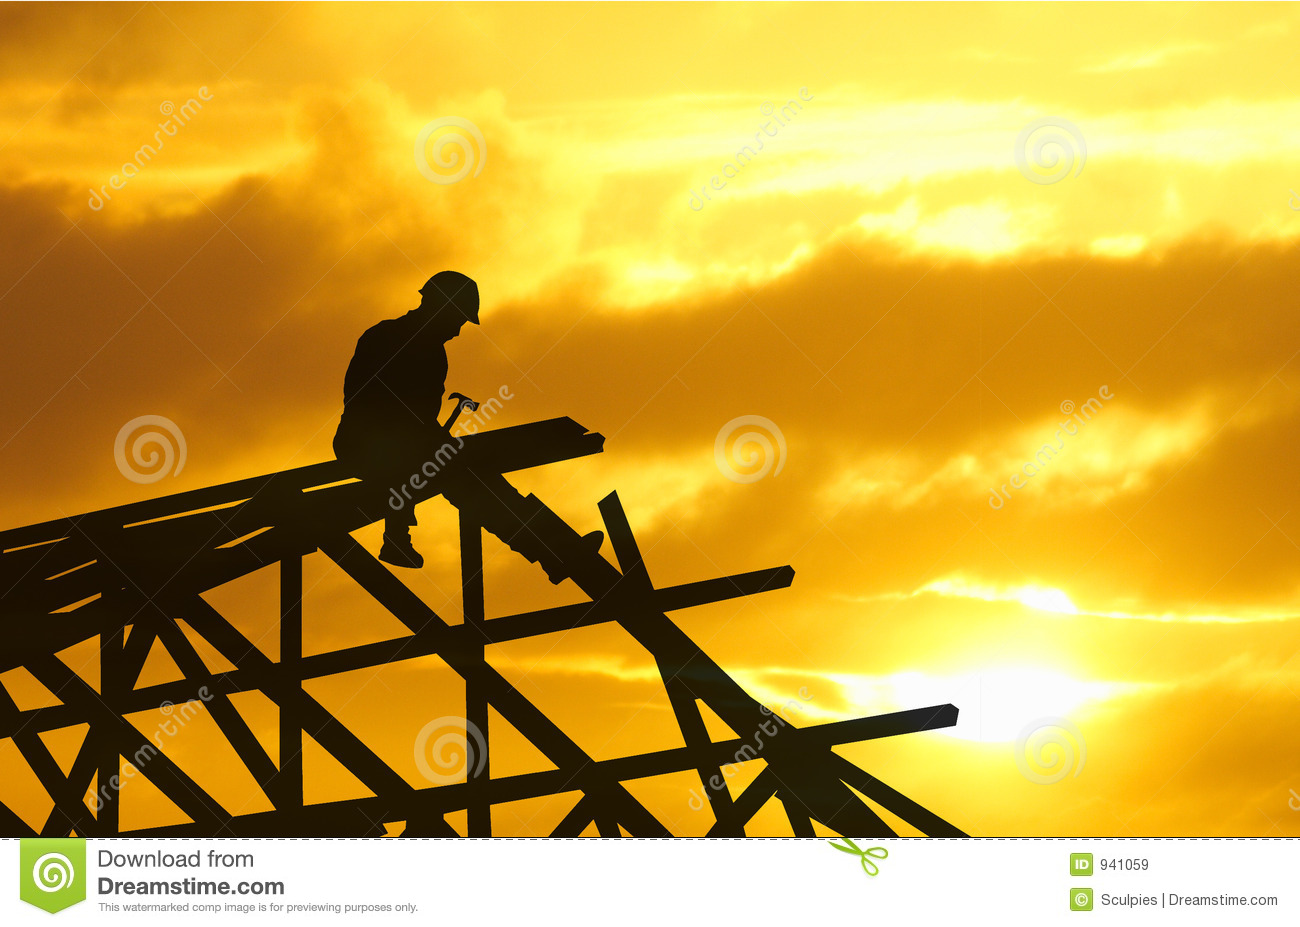 Roofer Silhouette Sunset Royalty Free Stock Images - Image: 941059